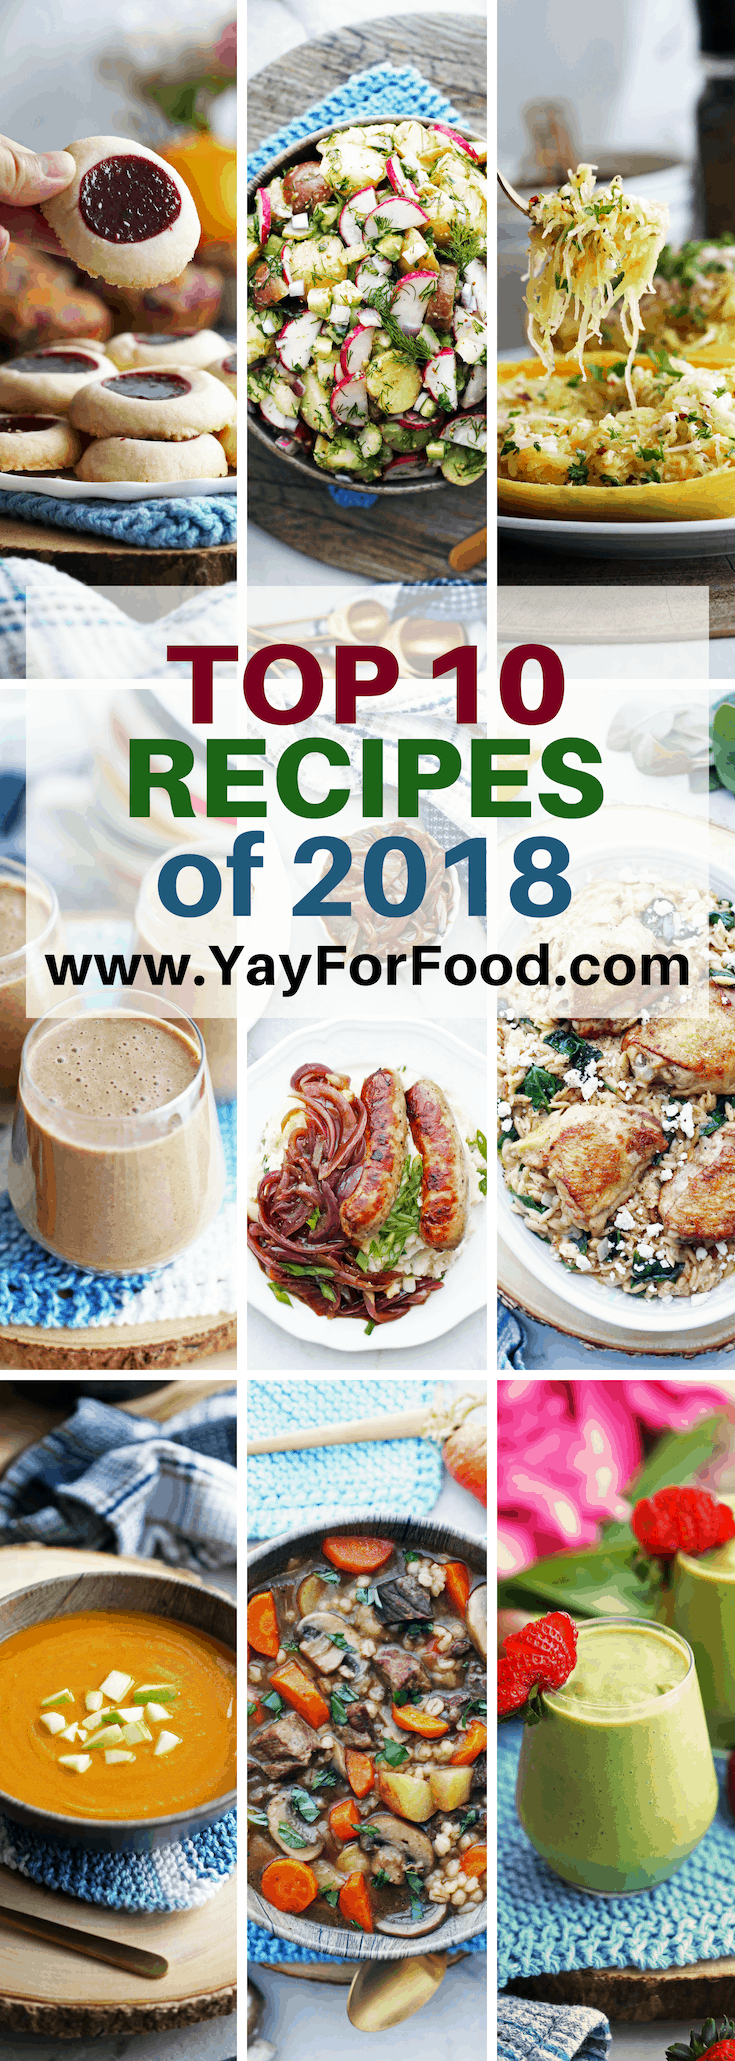 Readers' Top Ten New Recipes of 2018